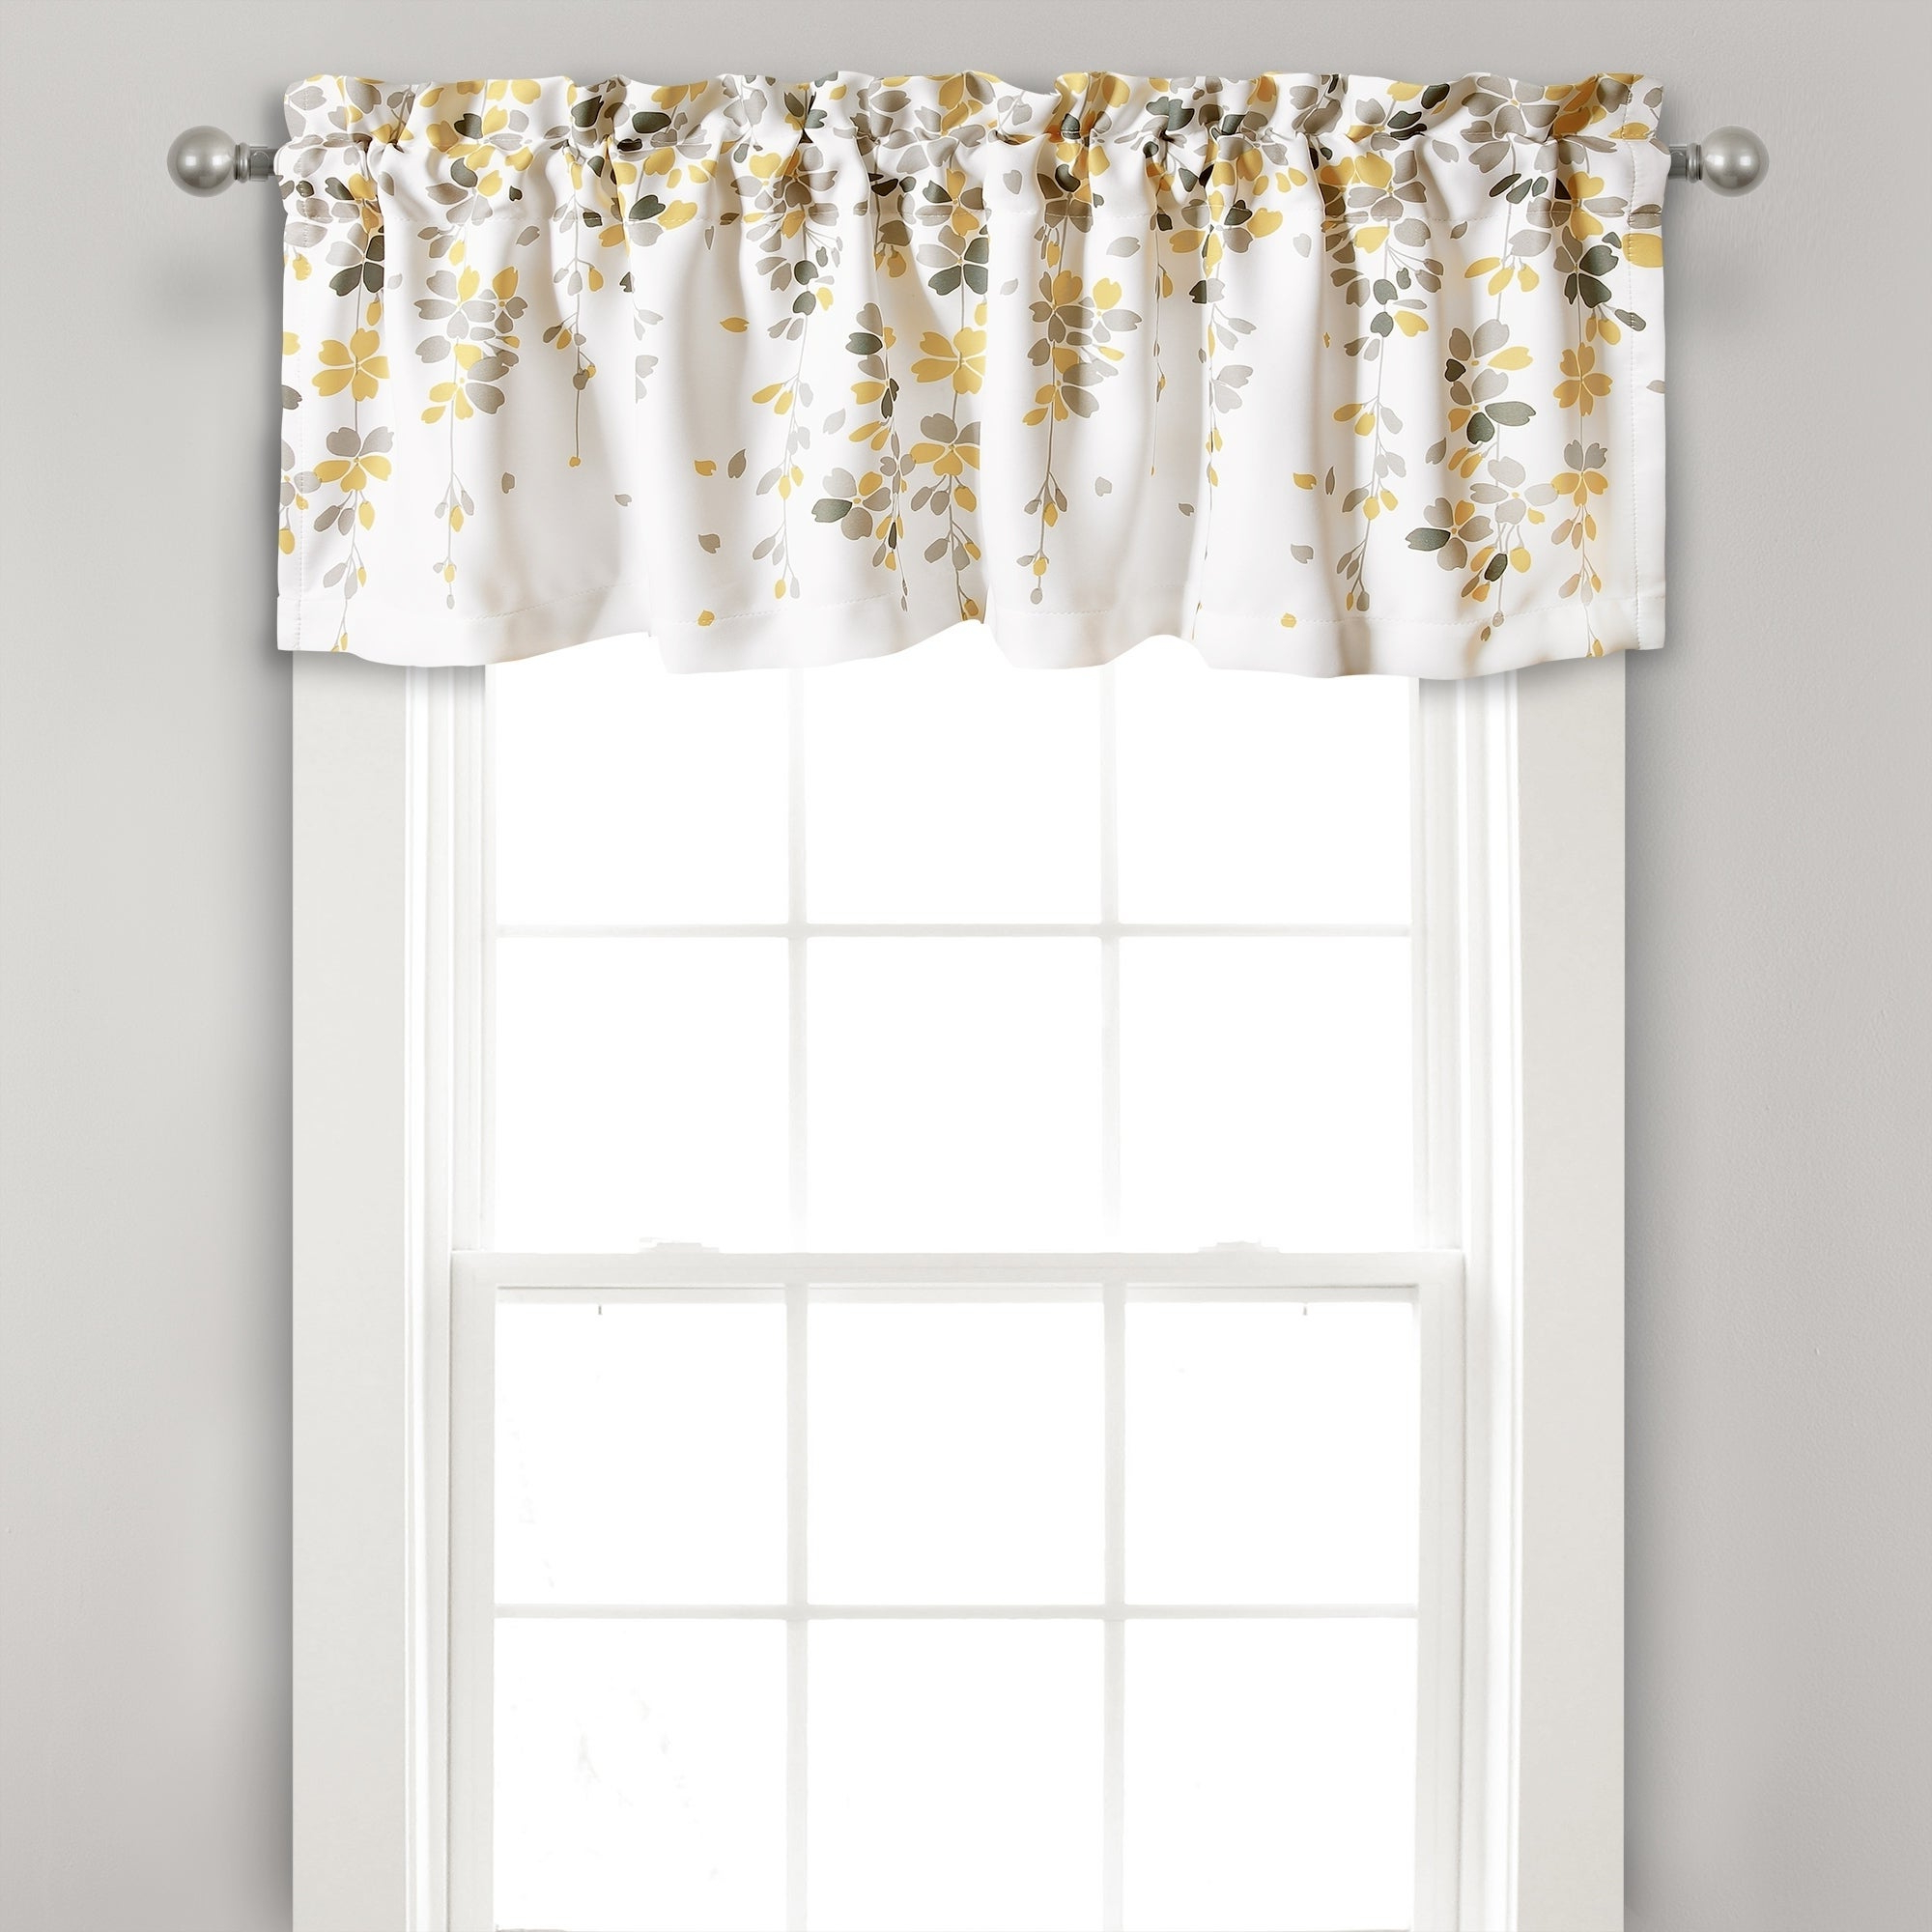 Favorite Traditional Tailored Tier And Swag Window Curtains Sets With Ornate Flower Garden Print With Lush Decor Weeping Flower Room Darkening Window Curtain Valance – 52X18 (Gallery 17 of 20)